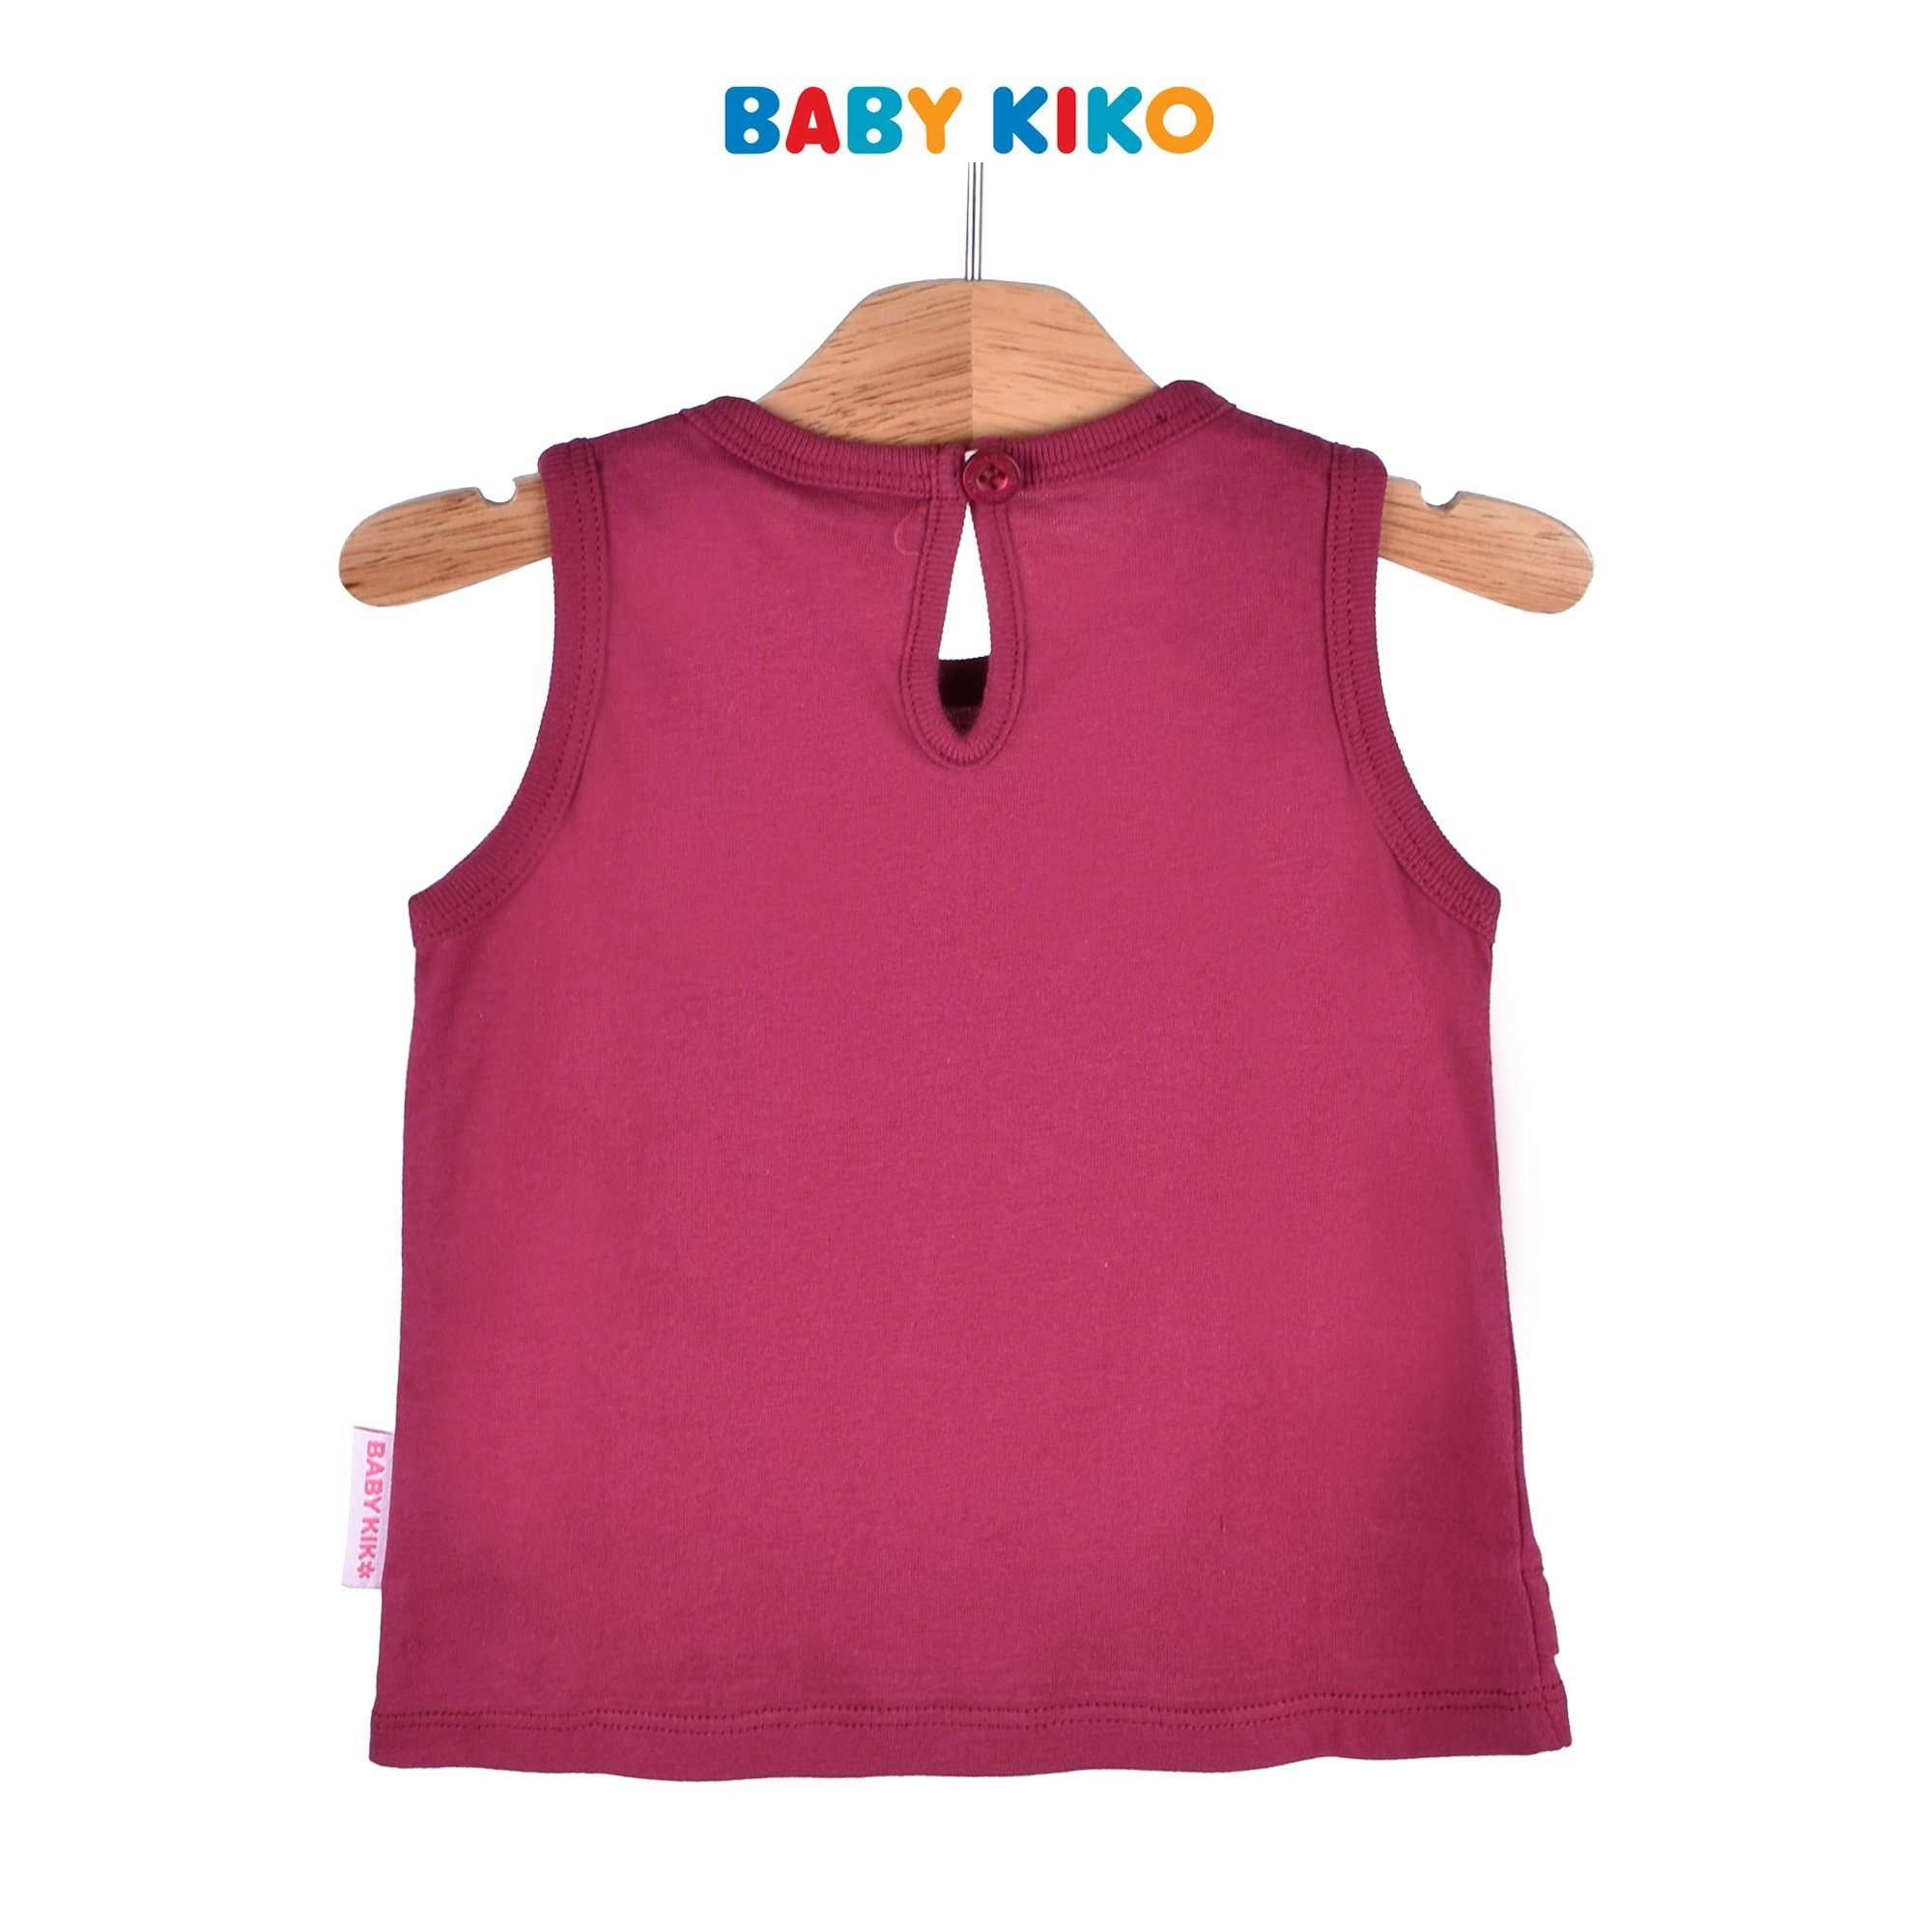 Baby KIKO Baby Girl Sleeveless Tee Maroon Knit 330053-101 : Buy Baby KIKO online at CMG.MY